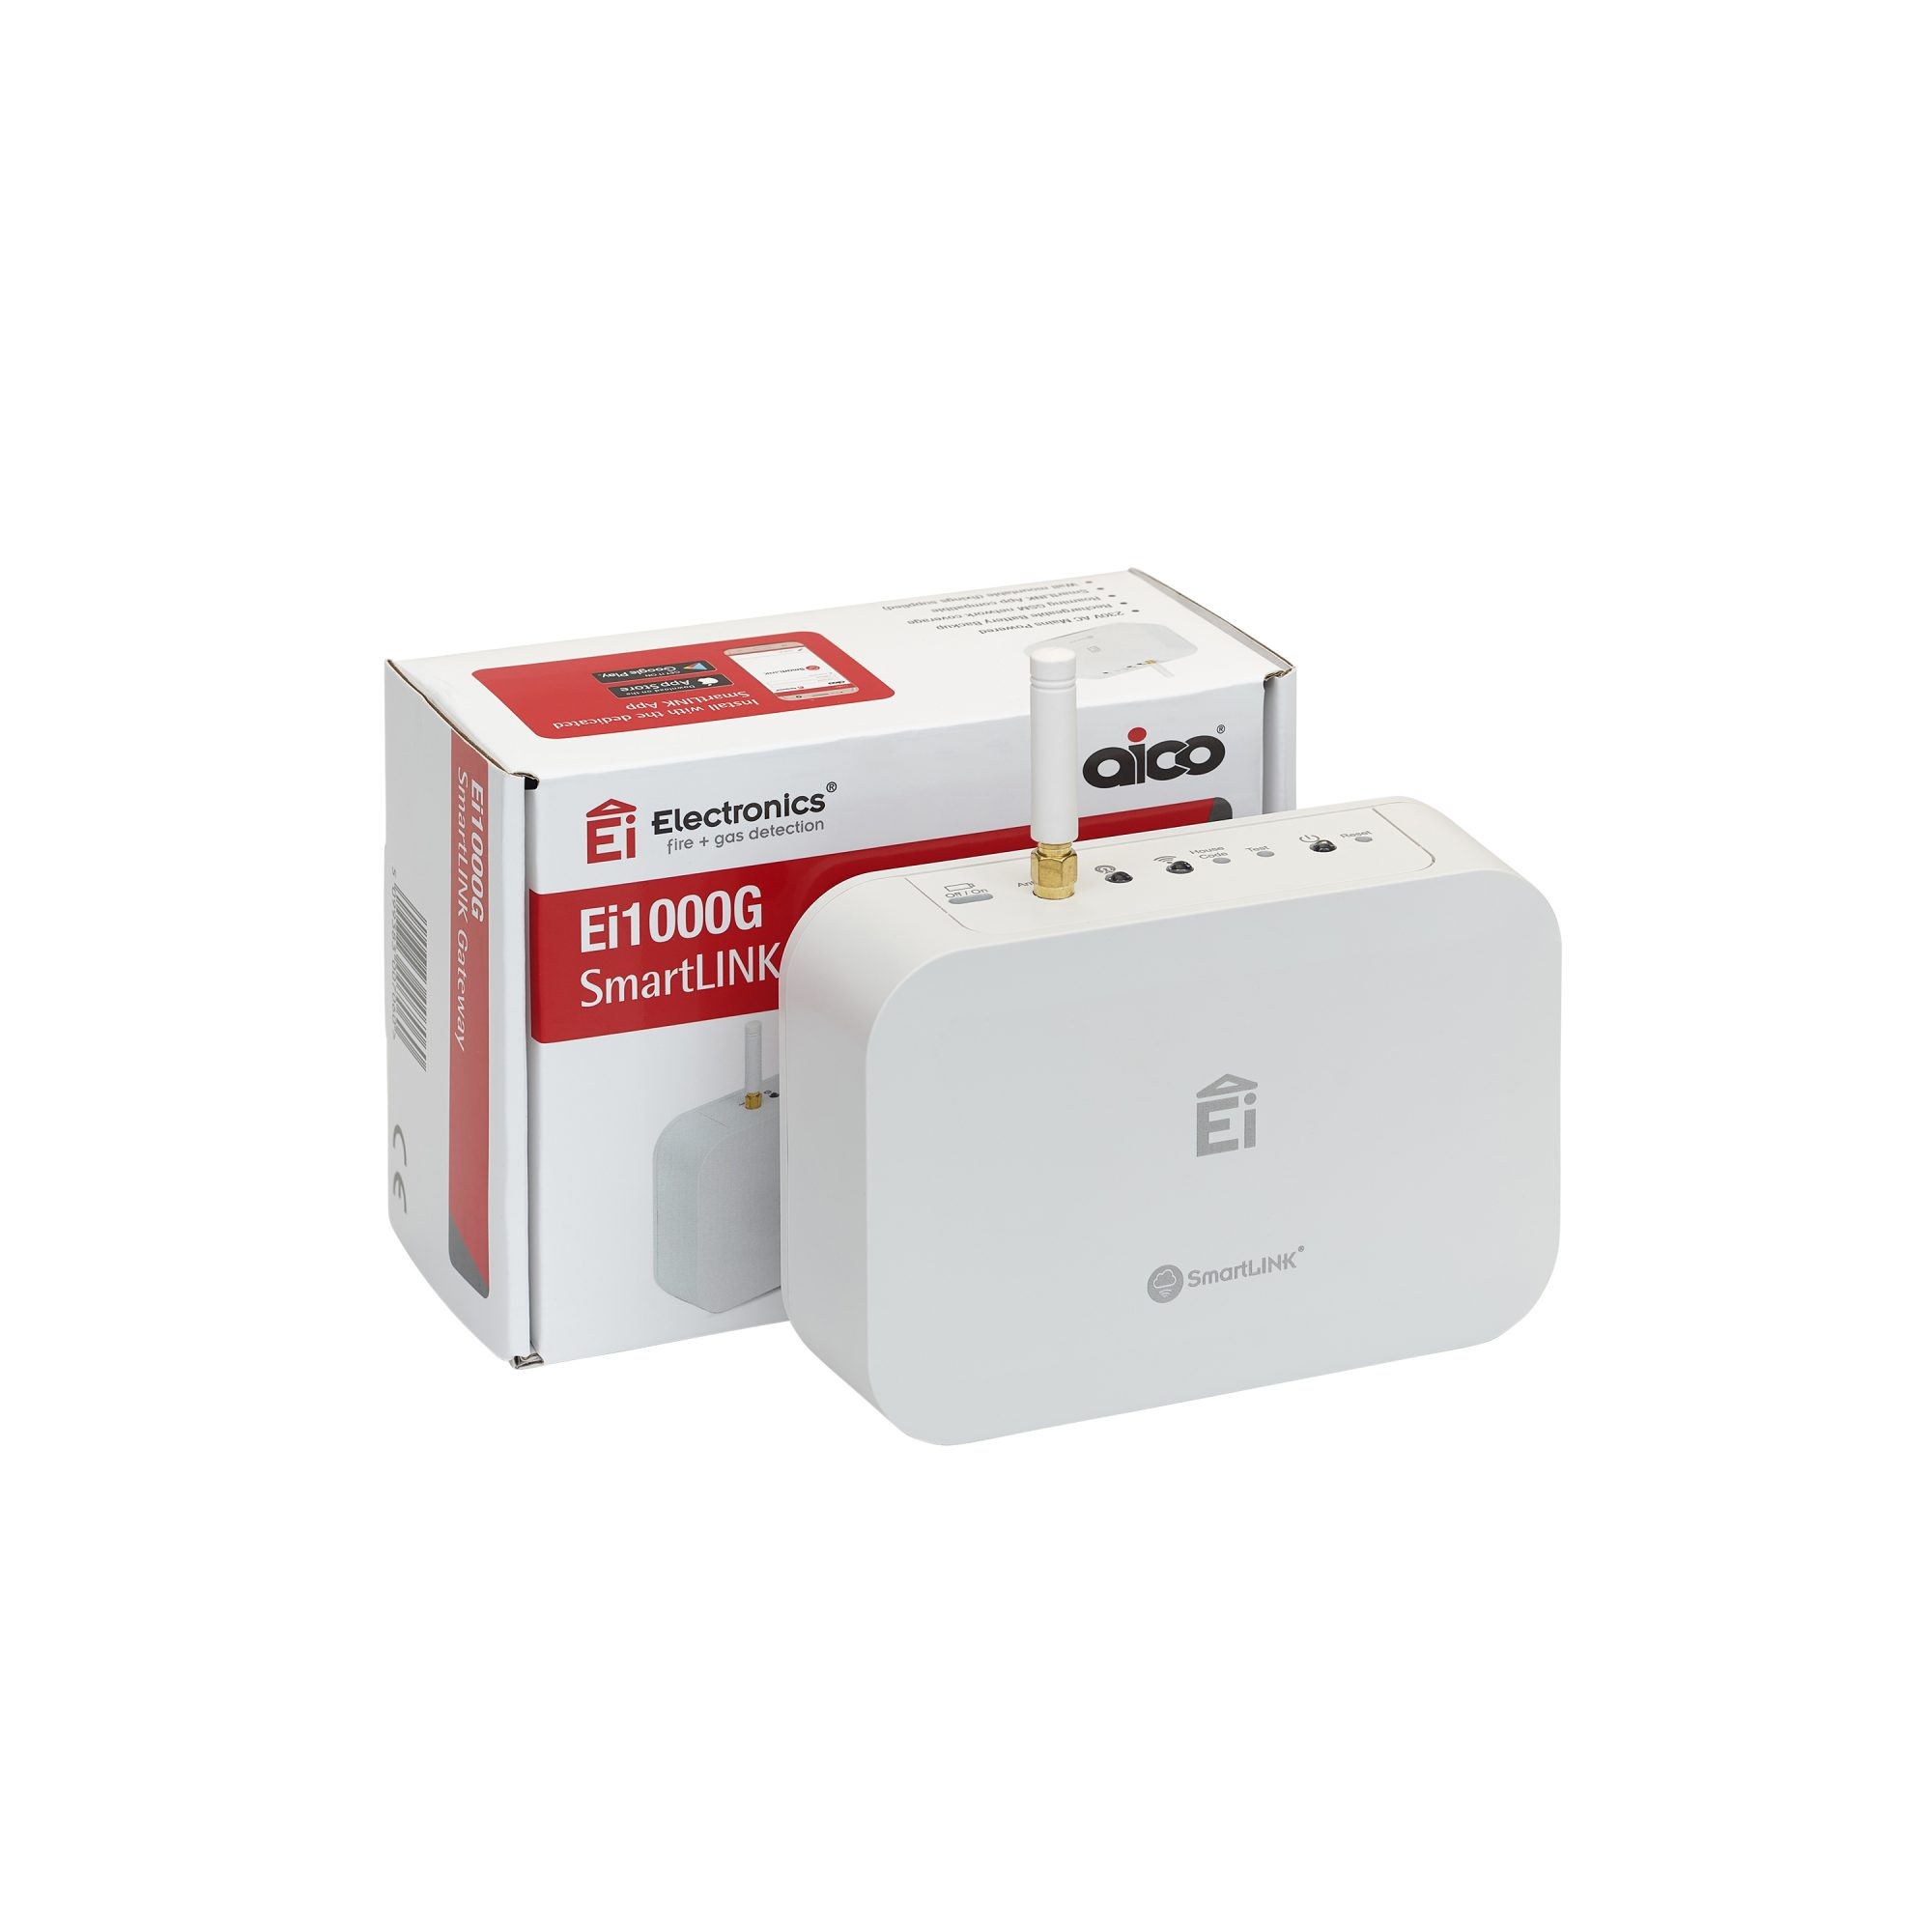 The Hyde Group Utilise Aico's Gateway To Manage Smoke Alarms